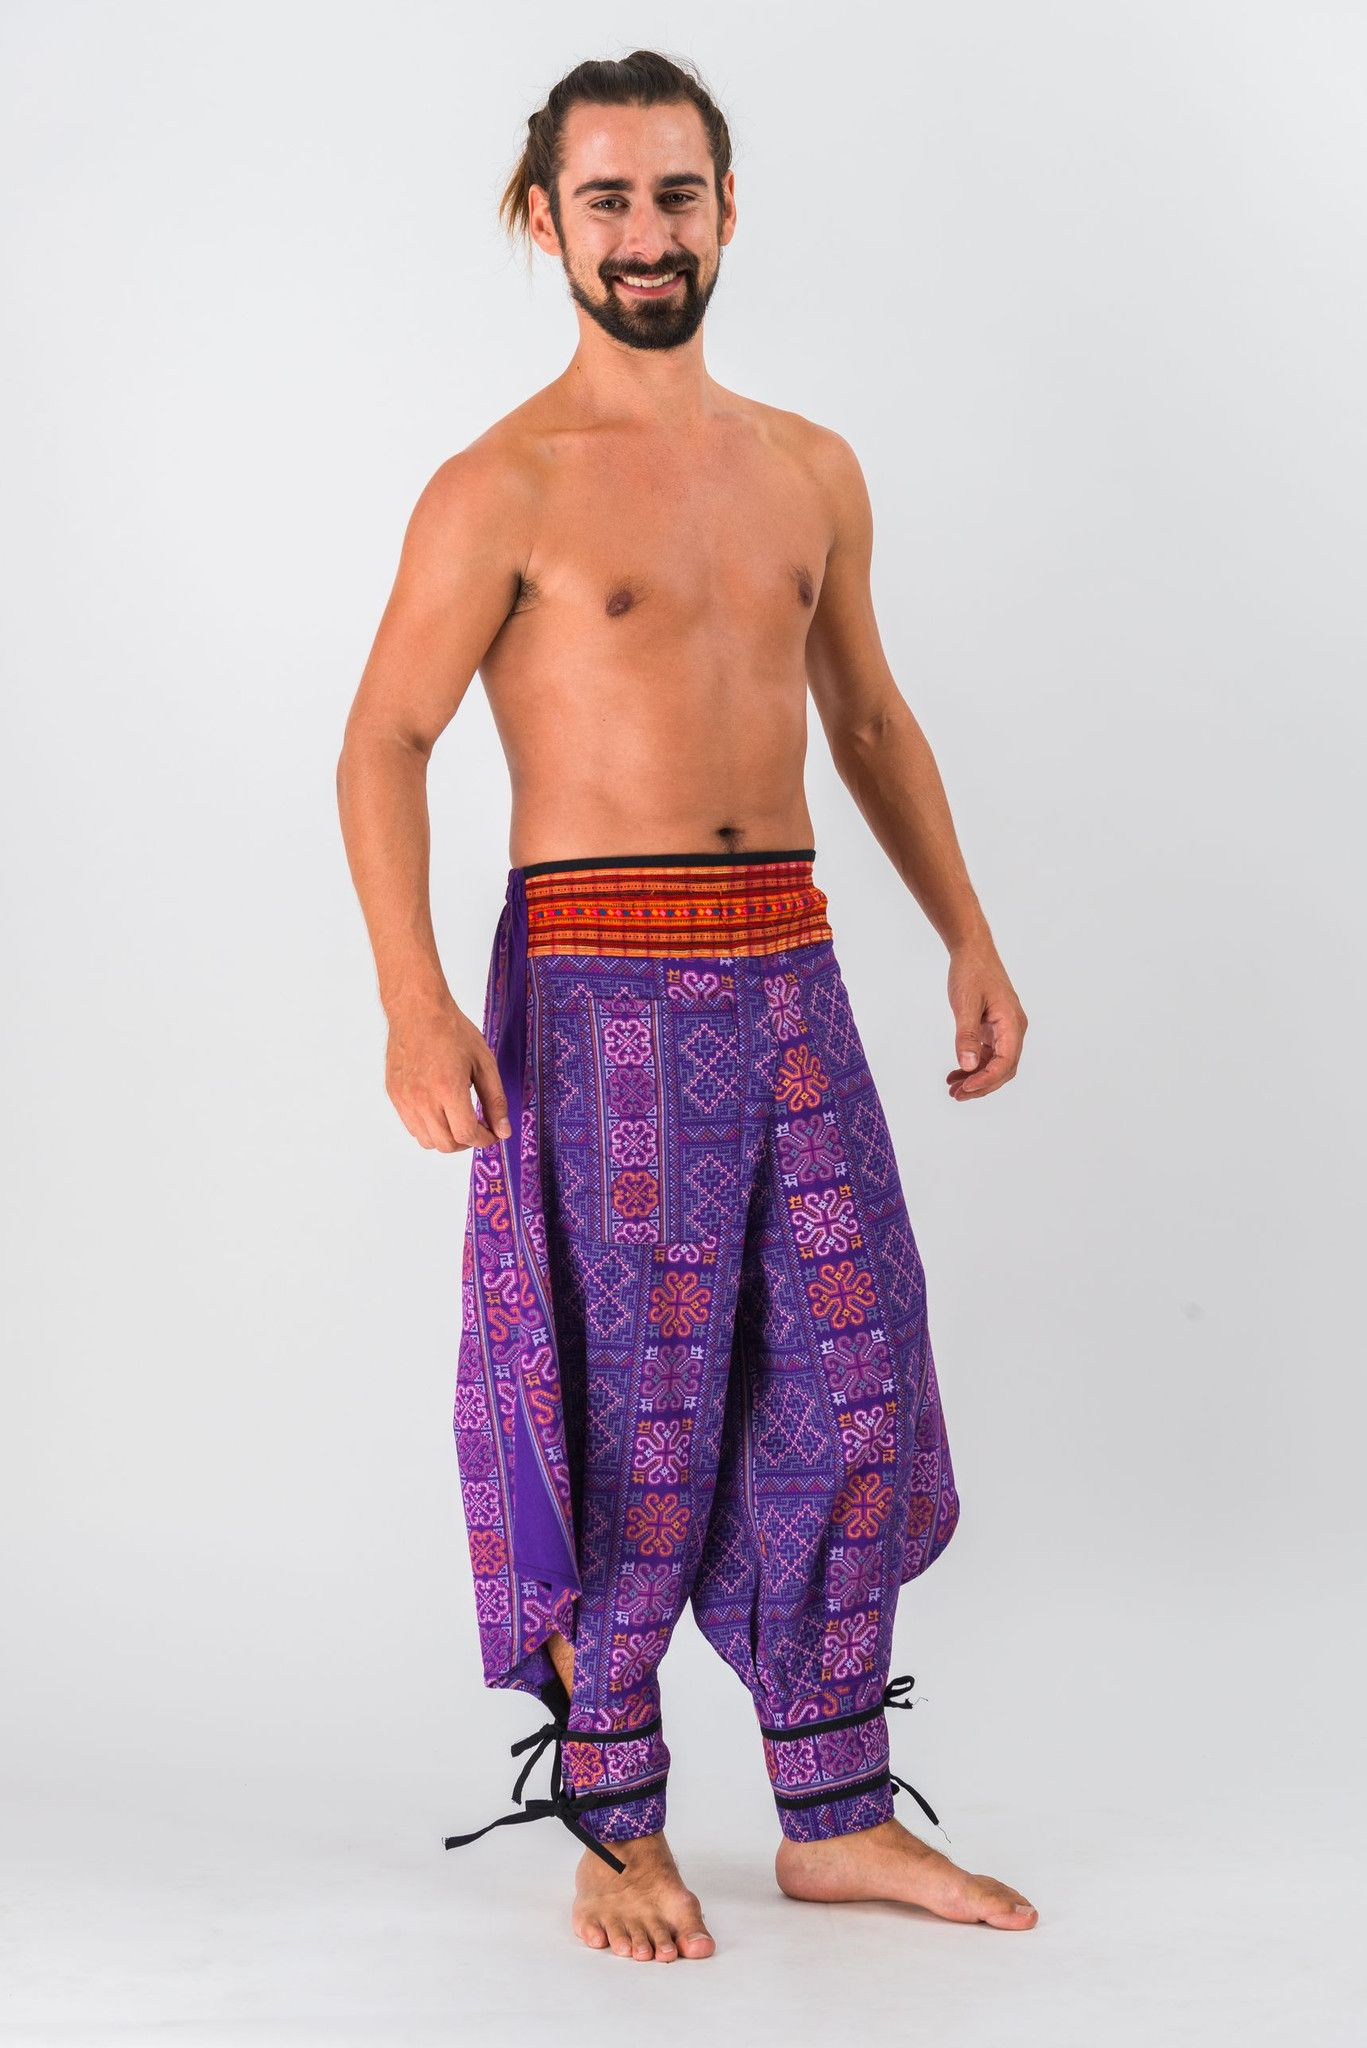 Clovers Thai Hill Tribe Fabric Men Harem Pants with Ankle Straps ...